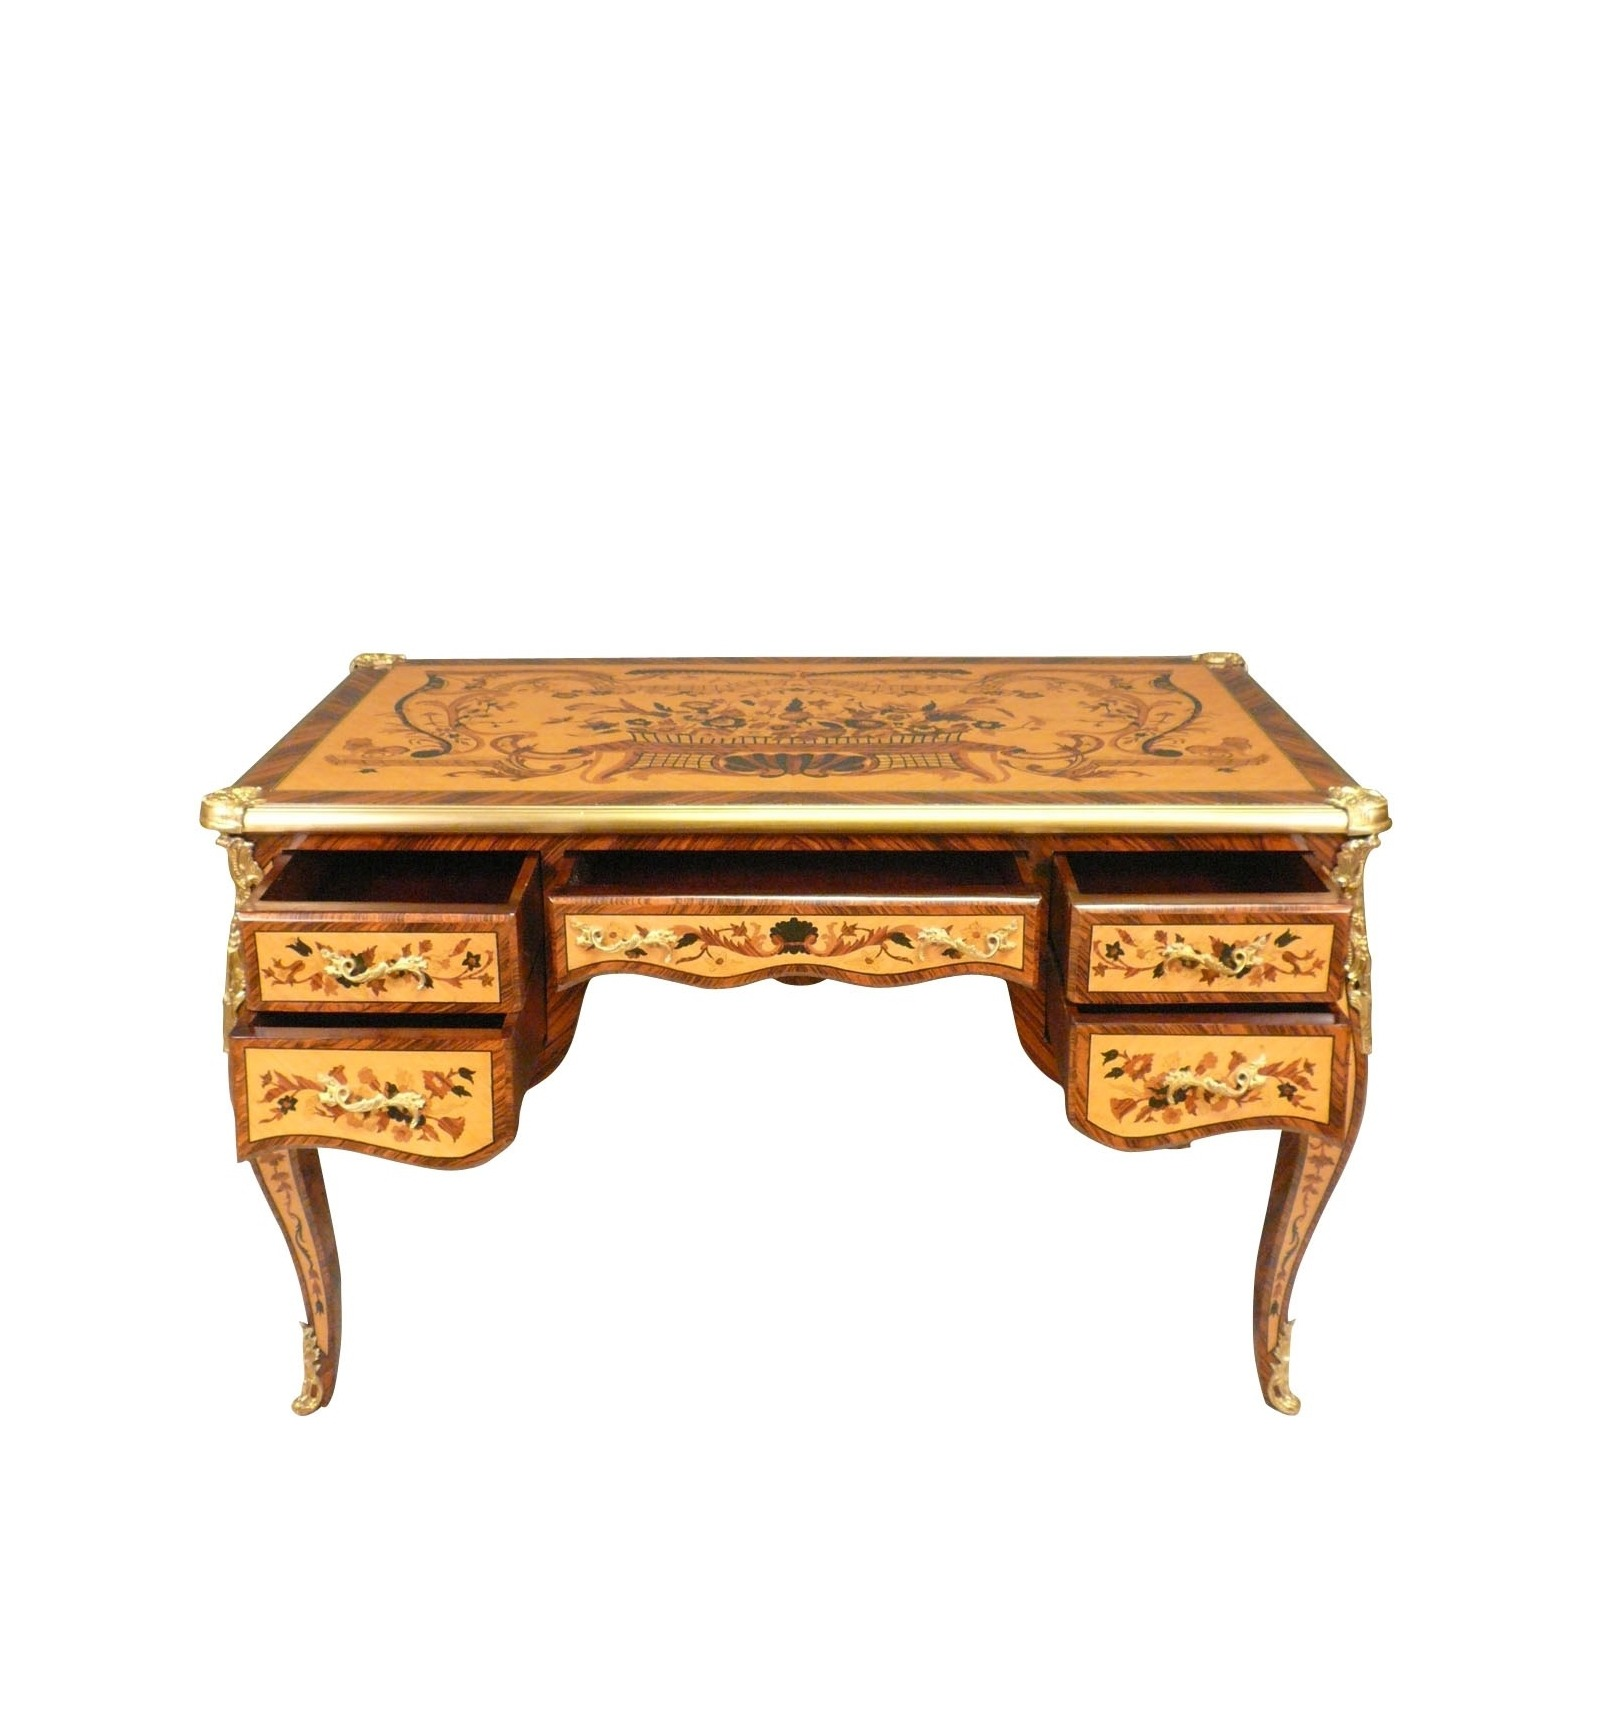 bureau louis xv en marqueterie d 39 acajou blond mobilier de style. Black Bedroom Furniture Sets. Home Design Ideas